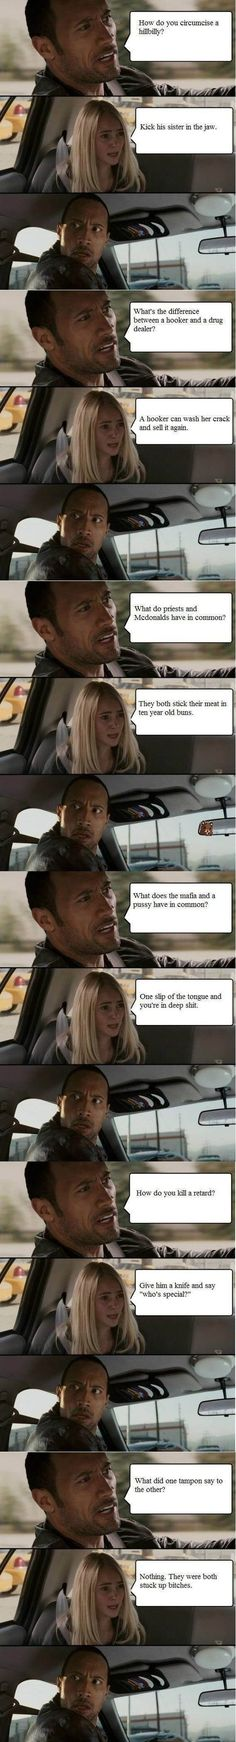 The Rock - Dirty Jokes - Funny Pictures - Funny Photos - Funny Images - Funny Pics Dirty Jokes Funny, Funny Jokes For Adults, Funny Texts, Funny Stuff, Rude Jokes, Inappropriate Jokes, Funny Humor, Hilarious Jokes, Random Humor